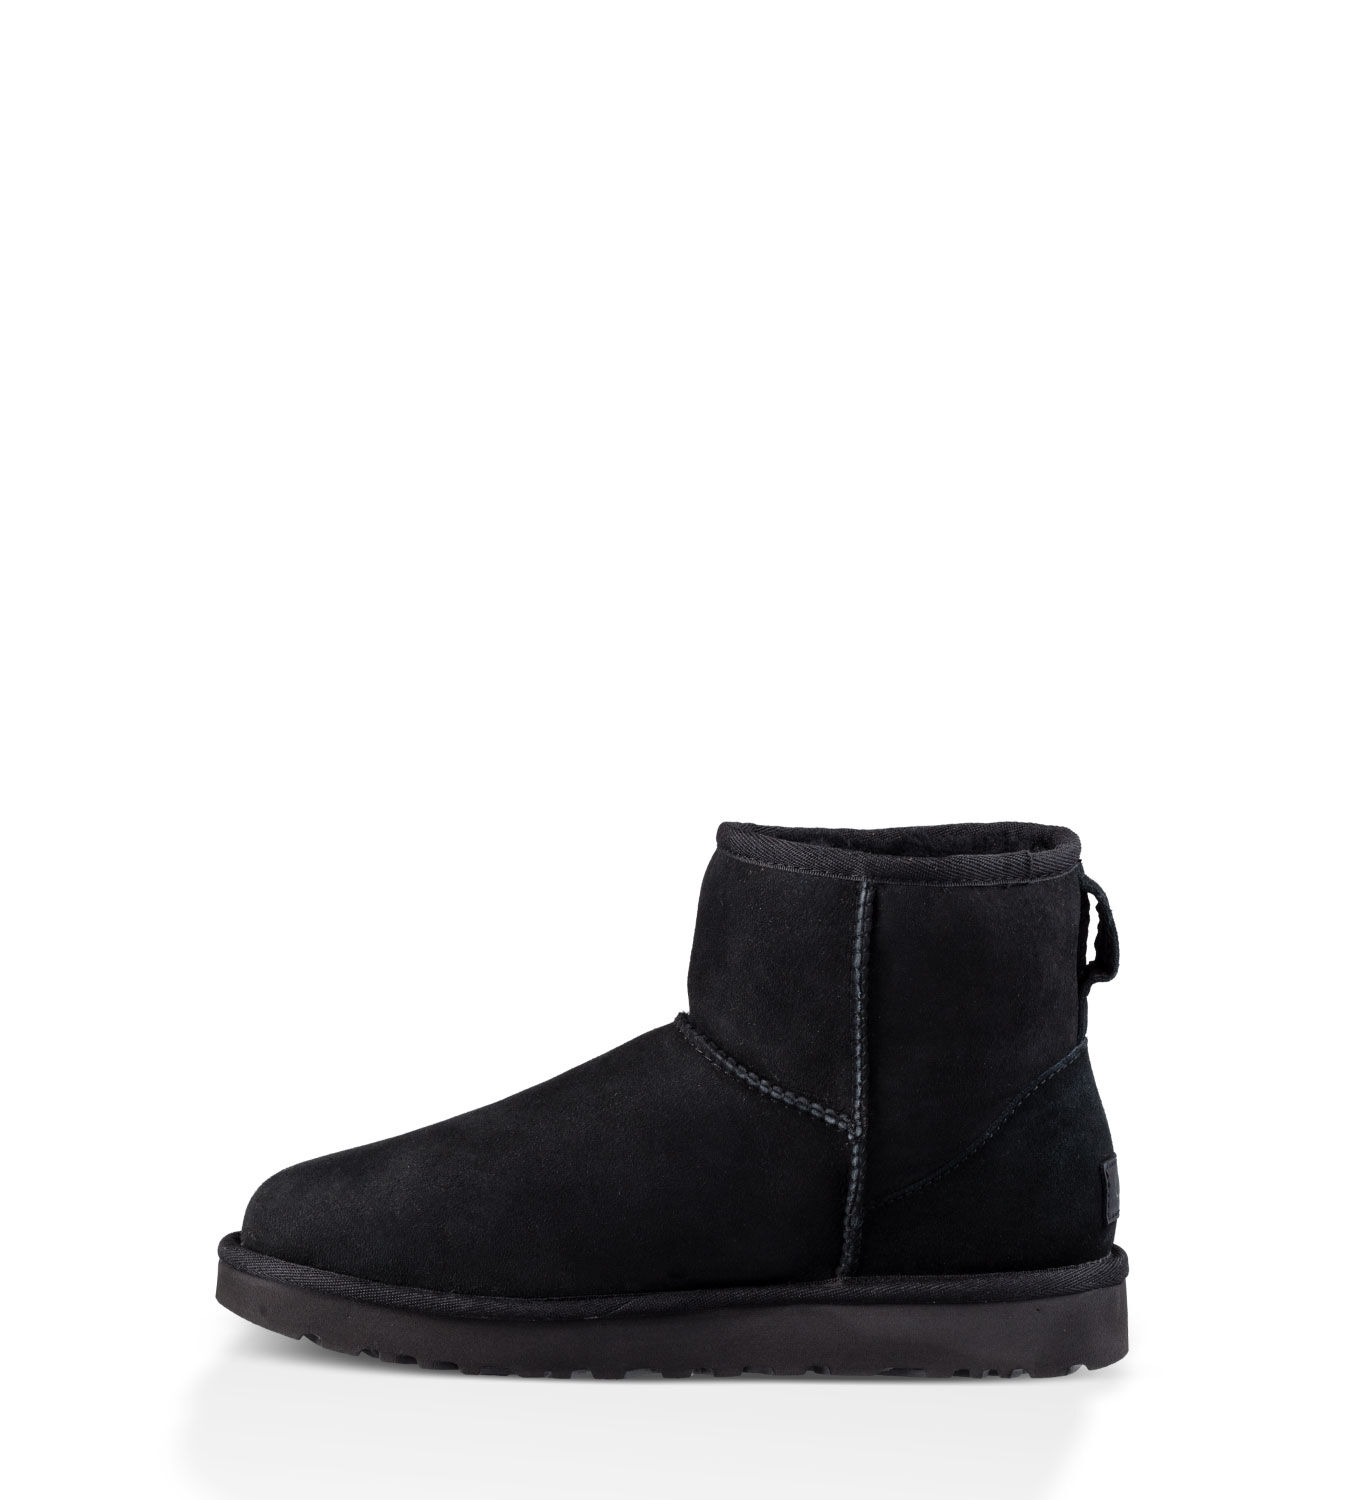 62b5b3b9f93 ugg classic mini leather amazon